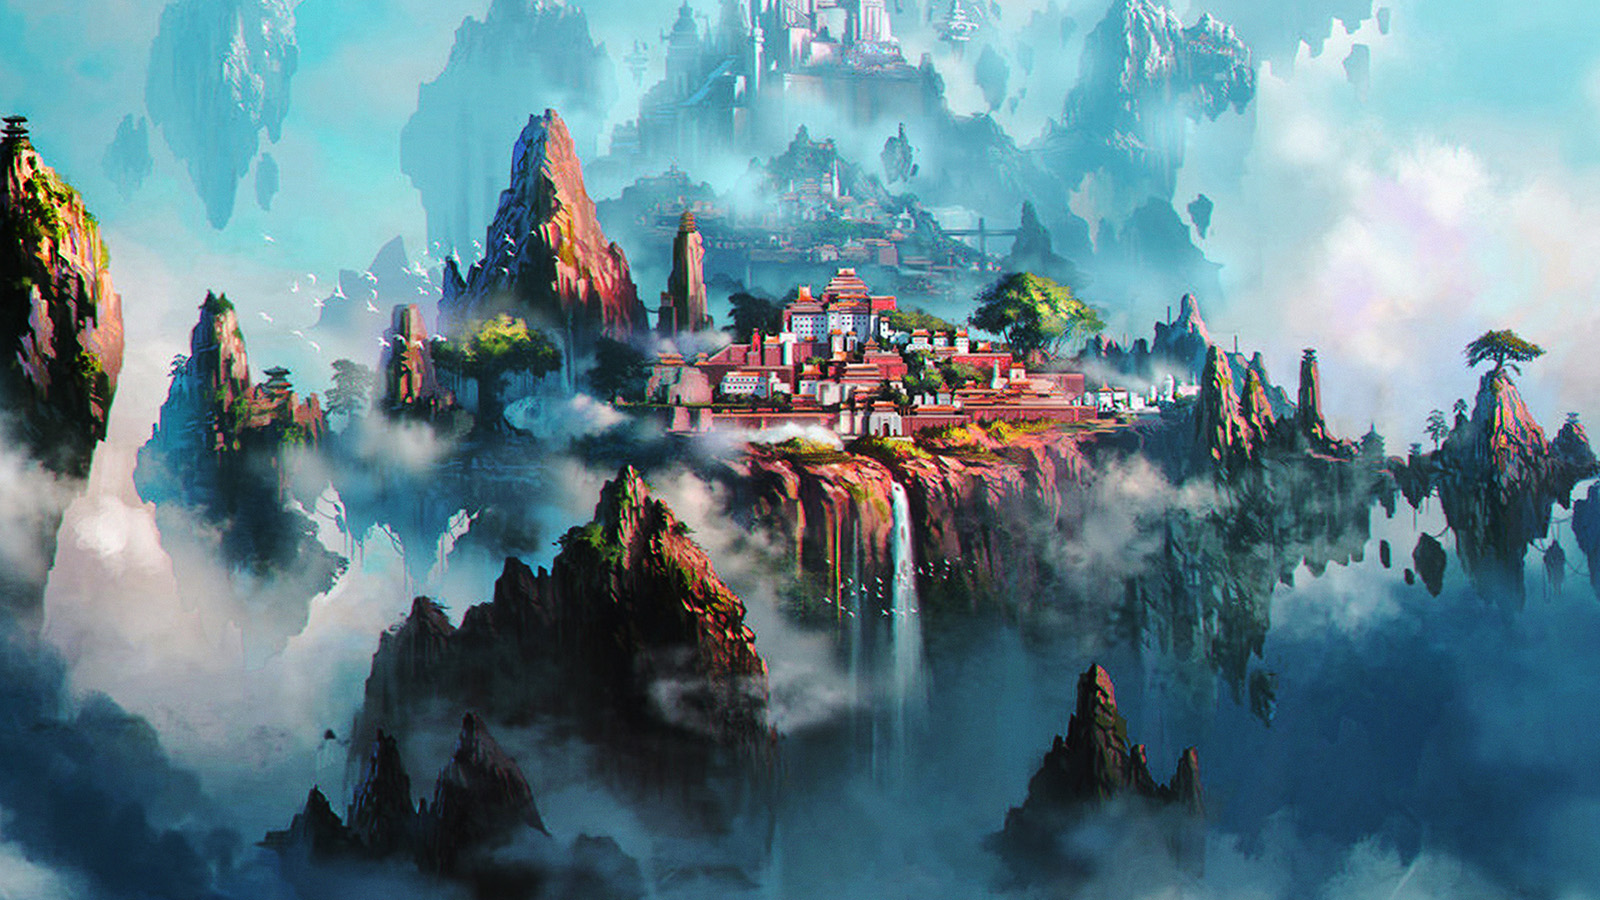 av36-cloud-town-fantasy-anime-liang-xing-illustration-art ...